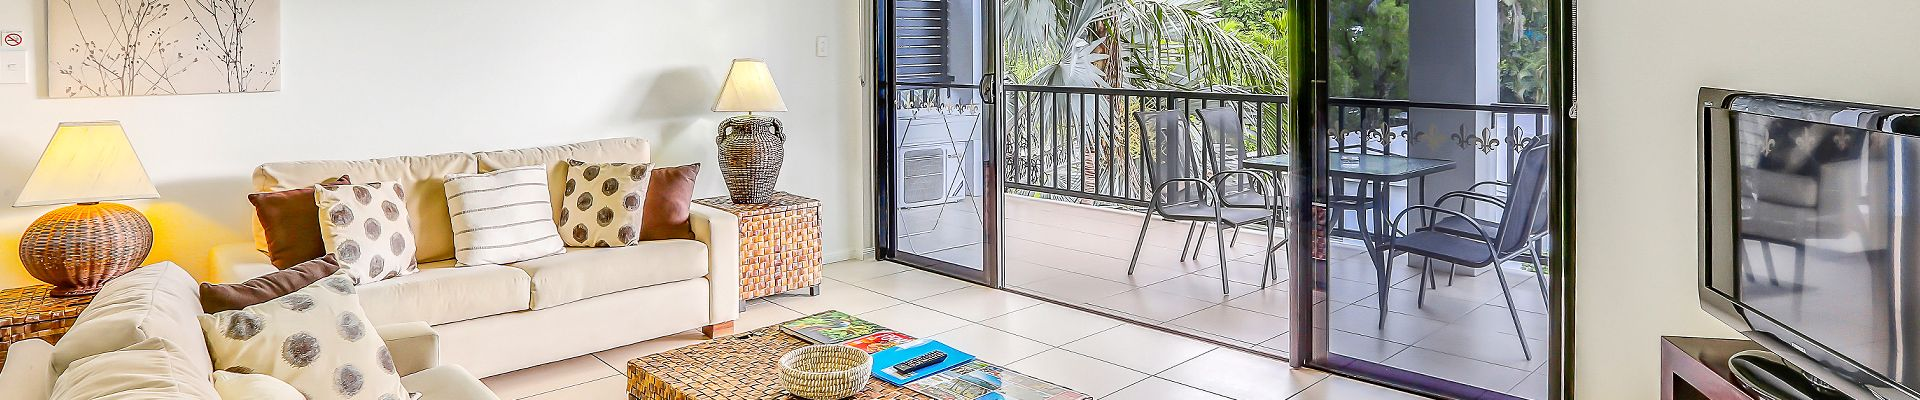 Palm Cove Cairns Holiday Apartment Accommodation 2 bedroom